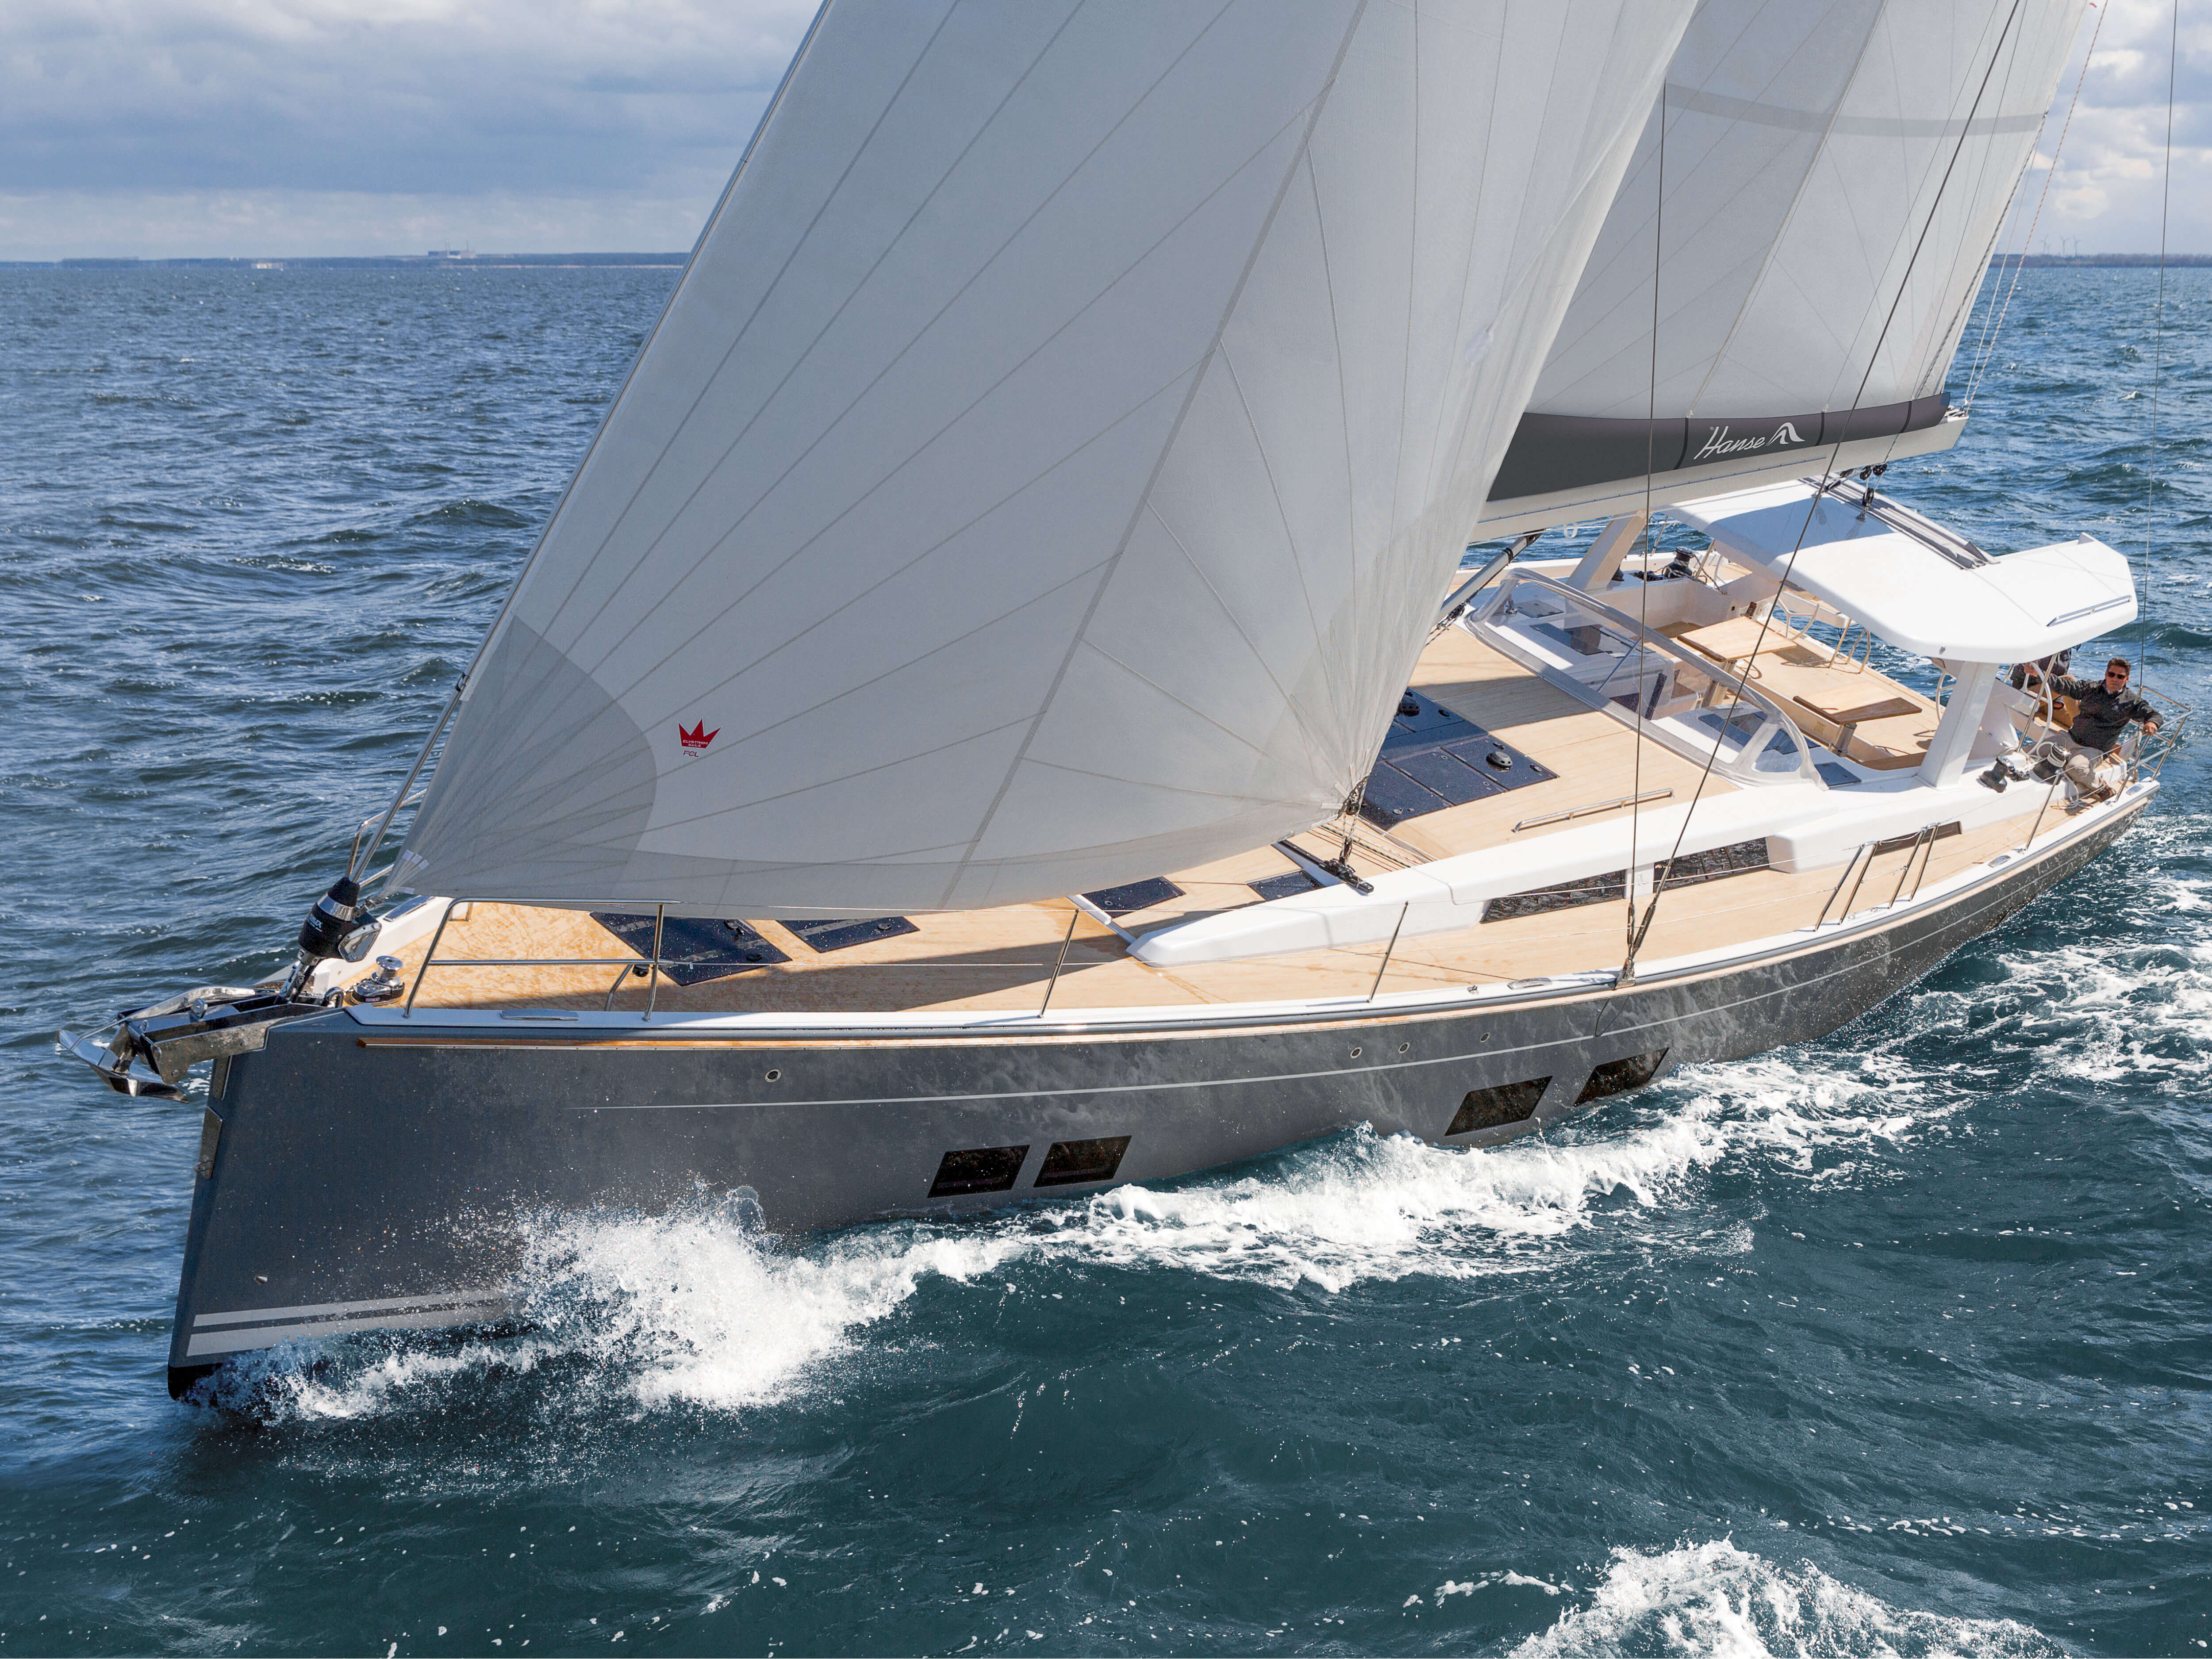 Hanse 588 | HANSE yachts amaze with their modern, functional design. Unique, puristic elegance meets exceptional performance from the pen of judel/vrolijk & co, the world's best and most experienced yacht designers. | Hanse